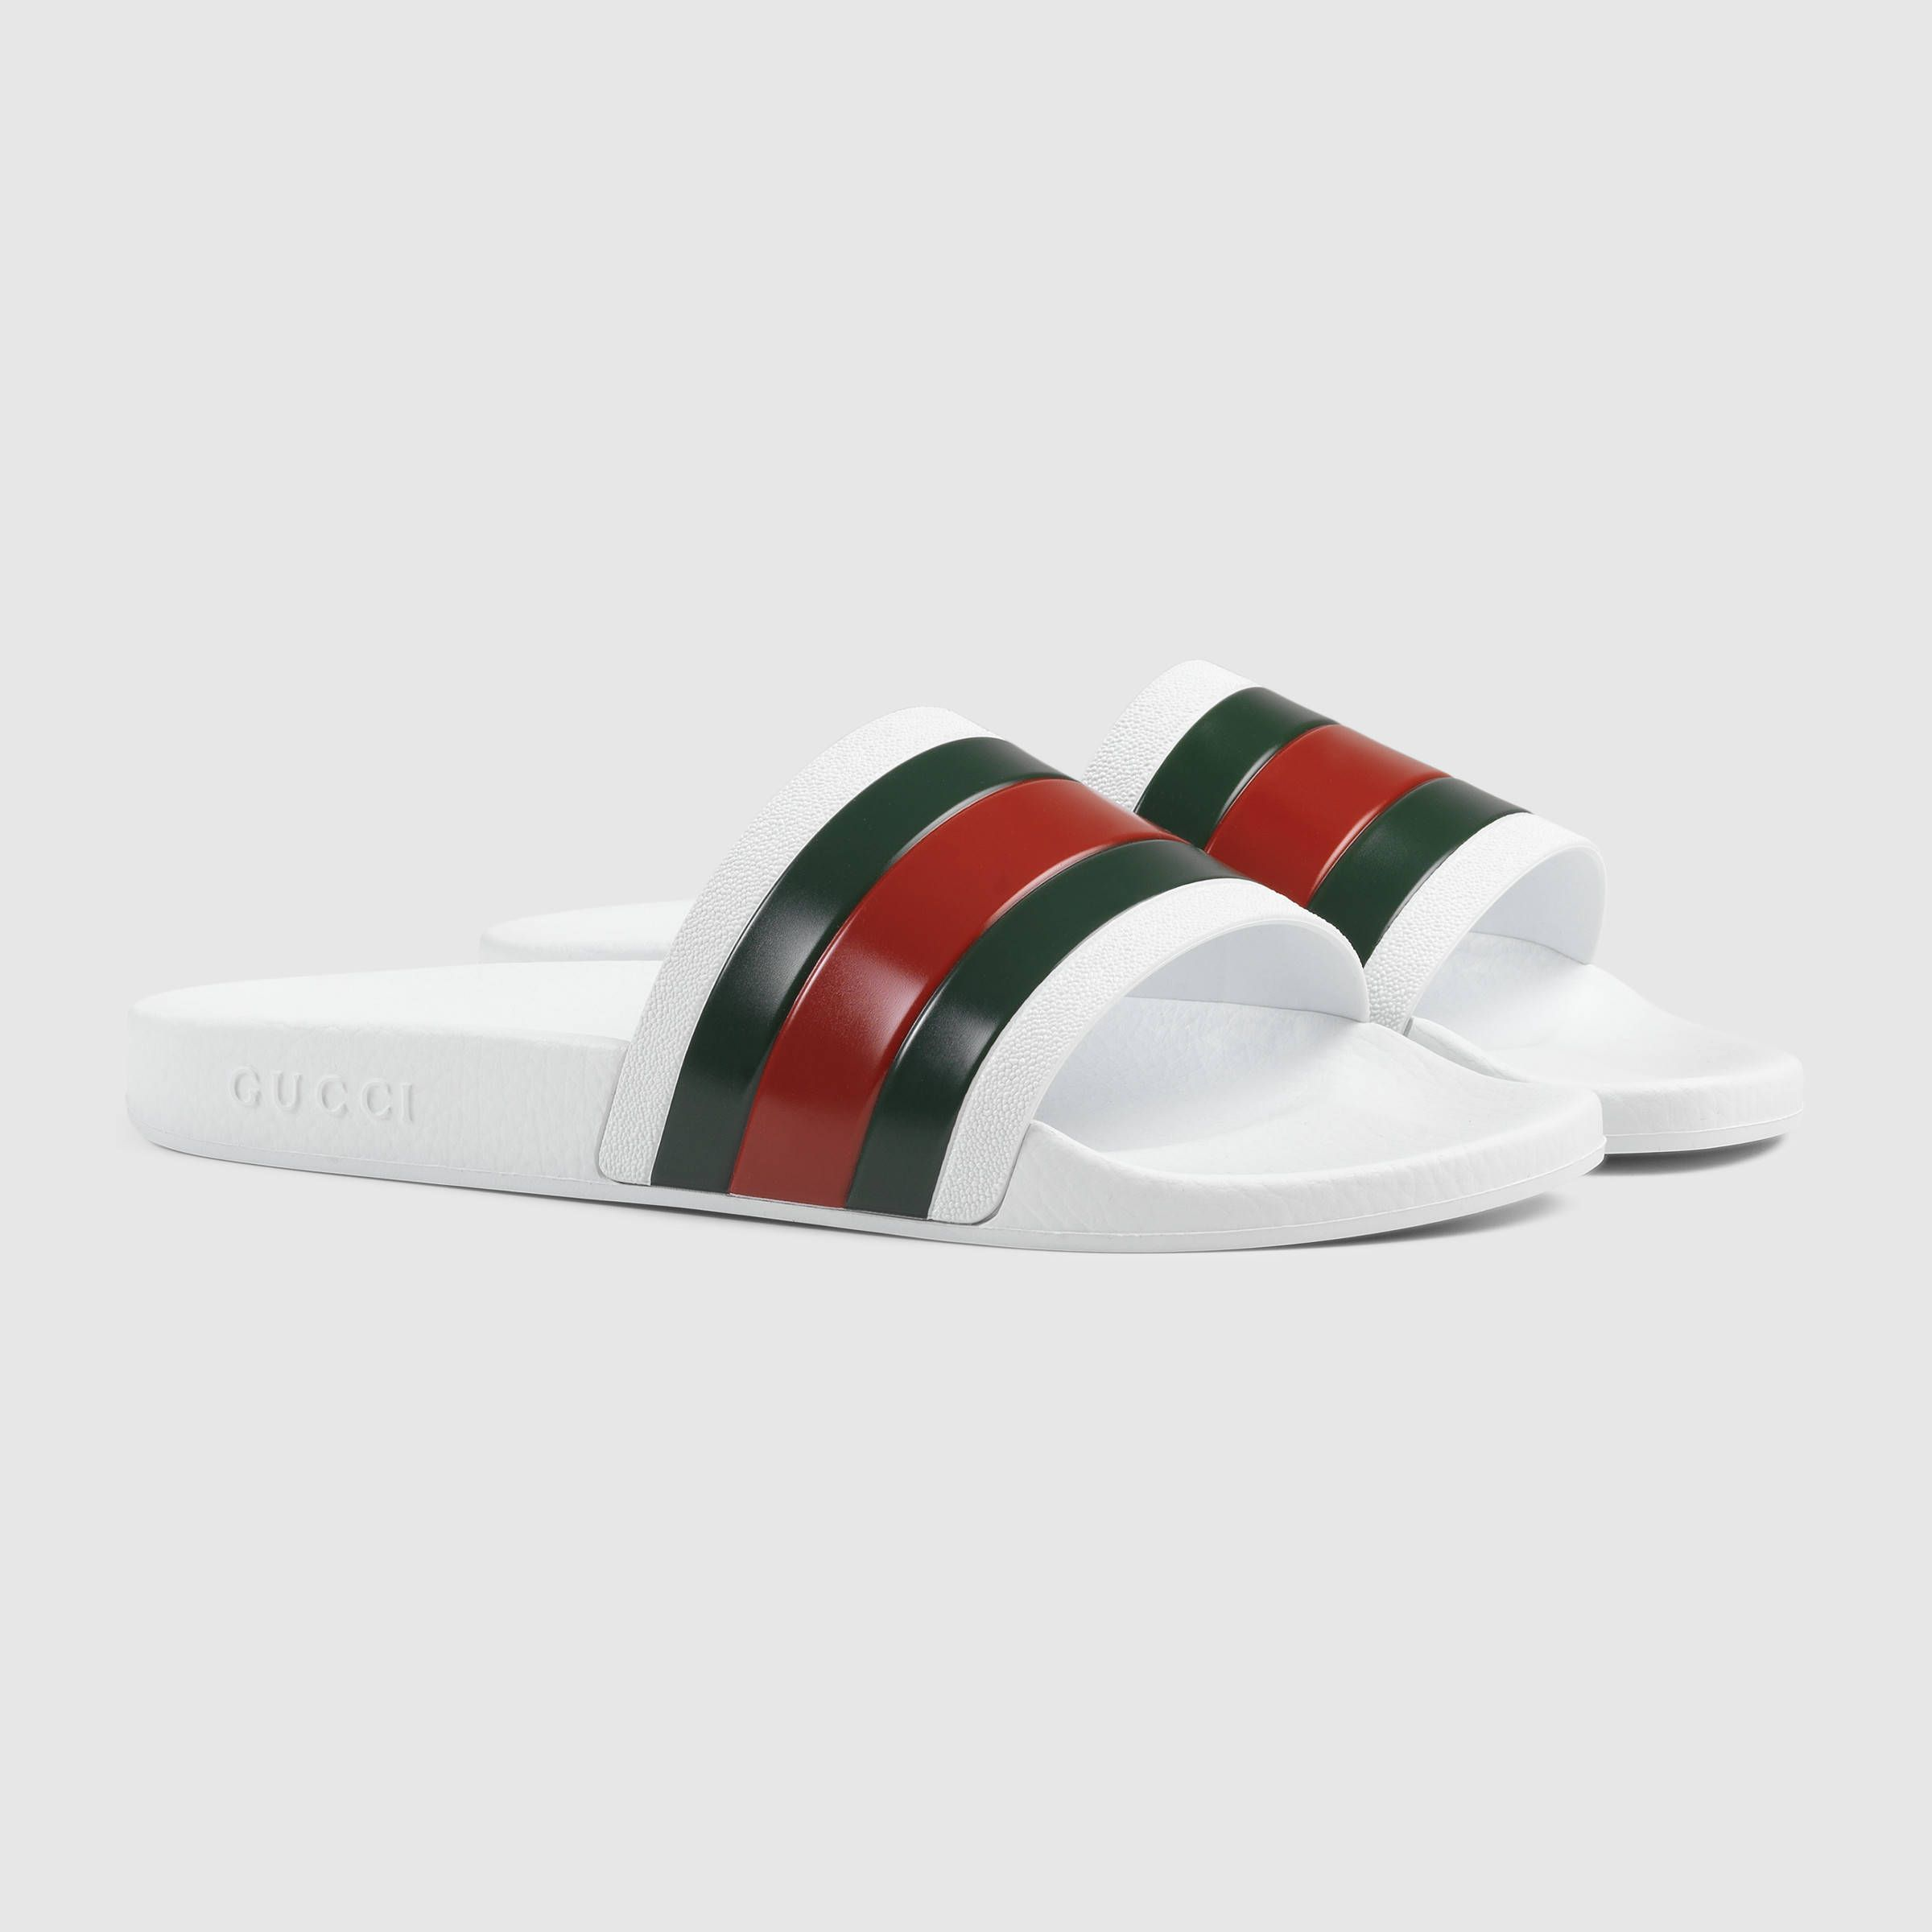 125d31eabf6 Gucci Men - Rubber slide sandal -  160